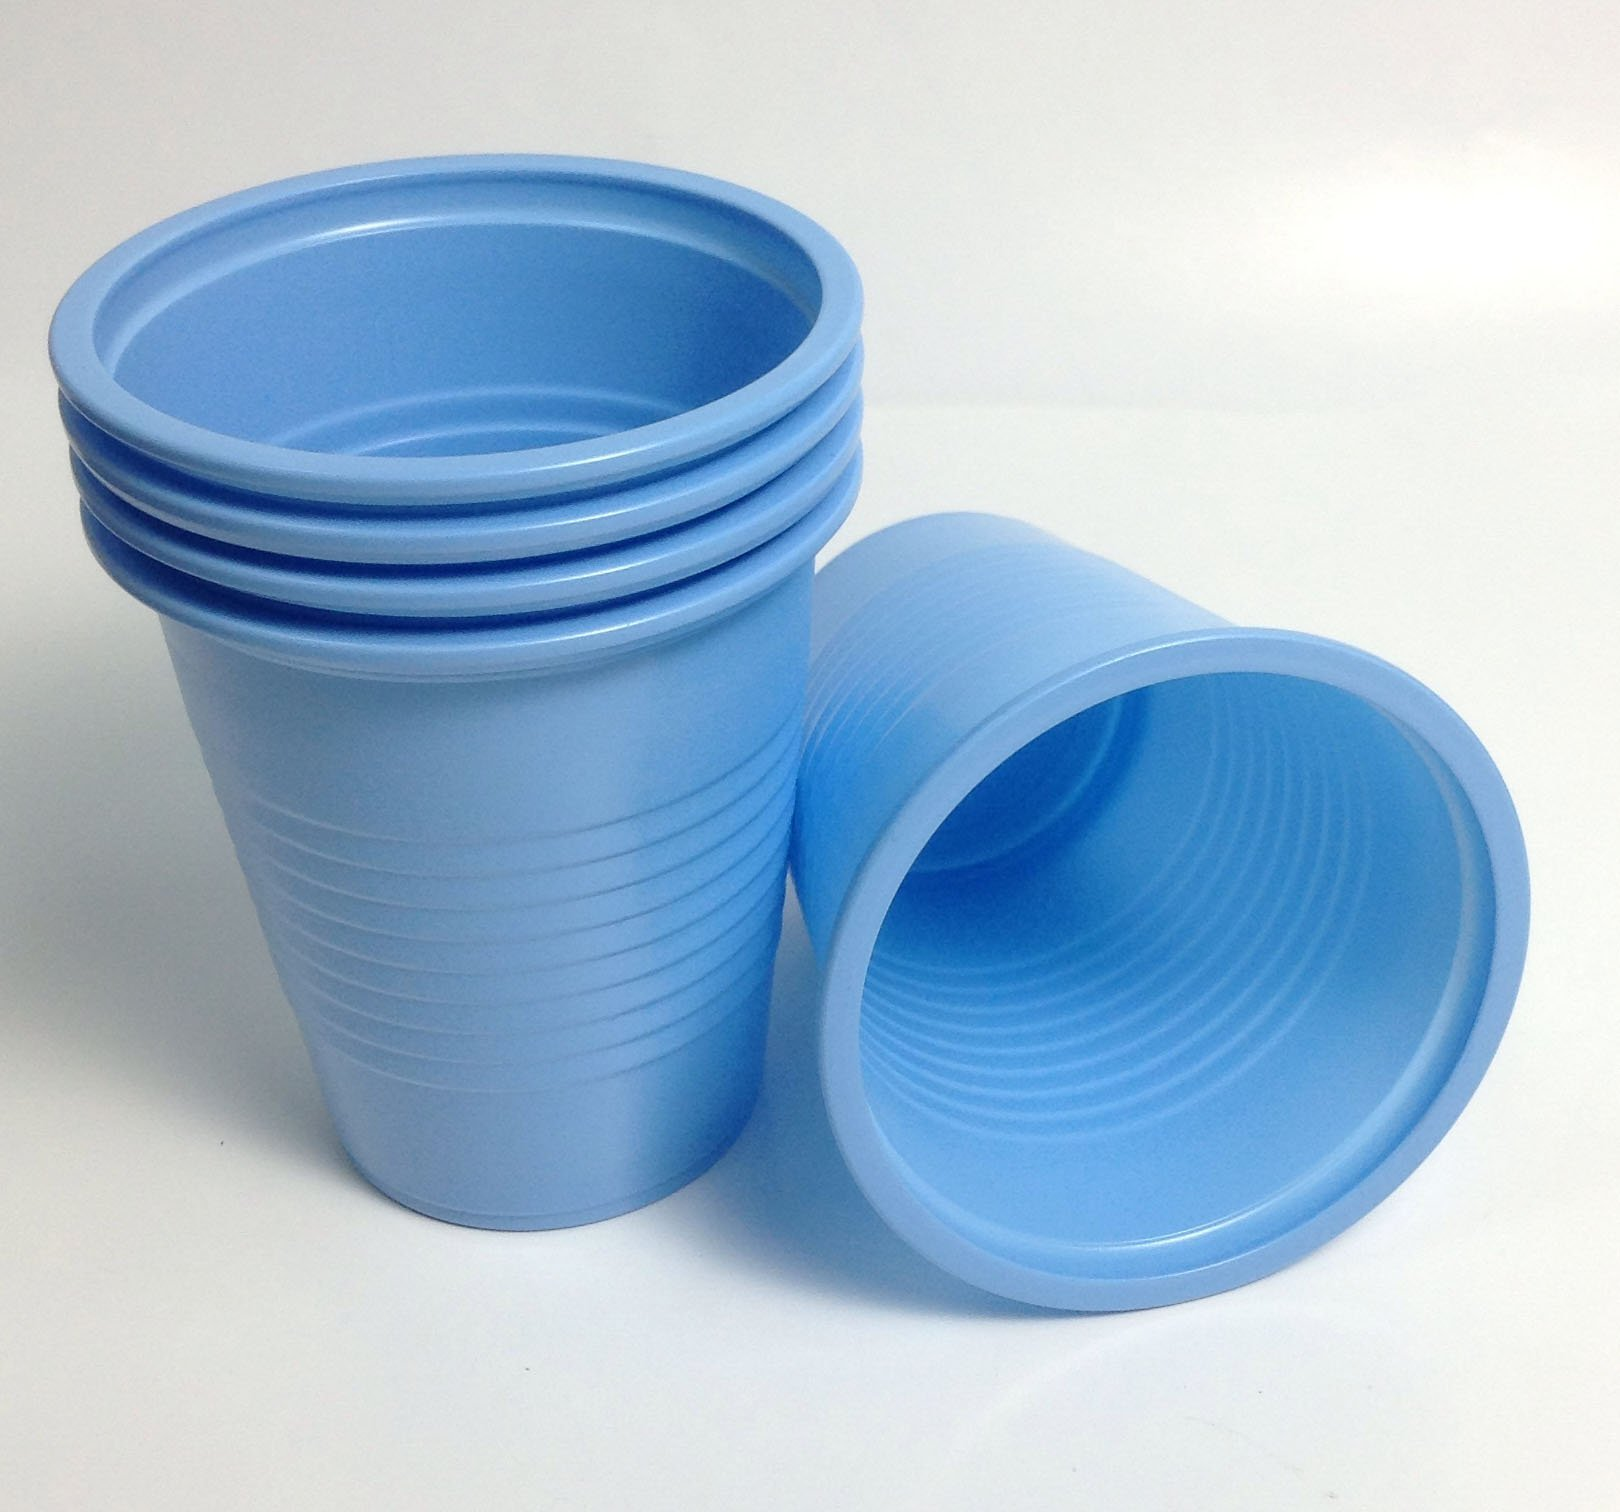 Drinking Cups 5 oz, 1000 Cups, 50 Pcs Per Bag Dental Deluxe